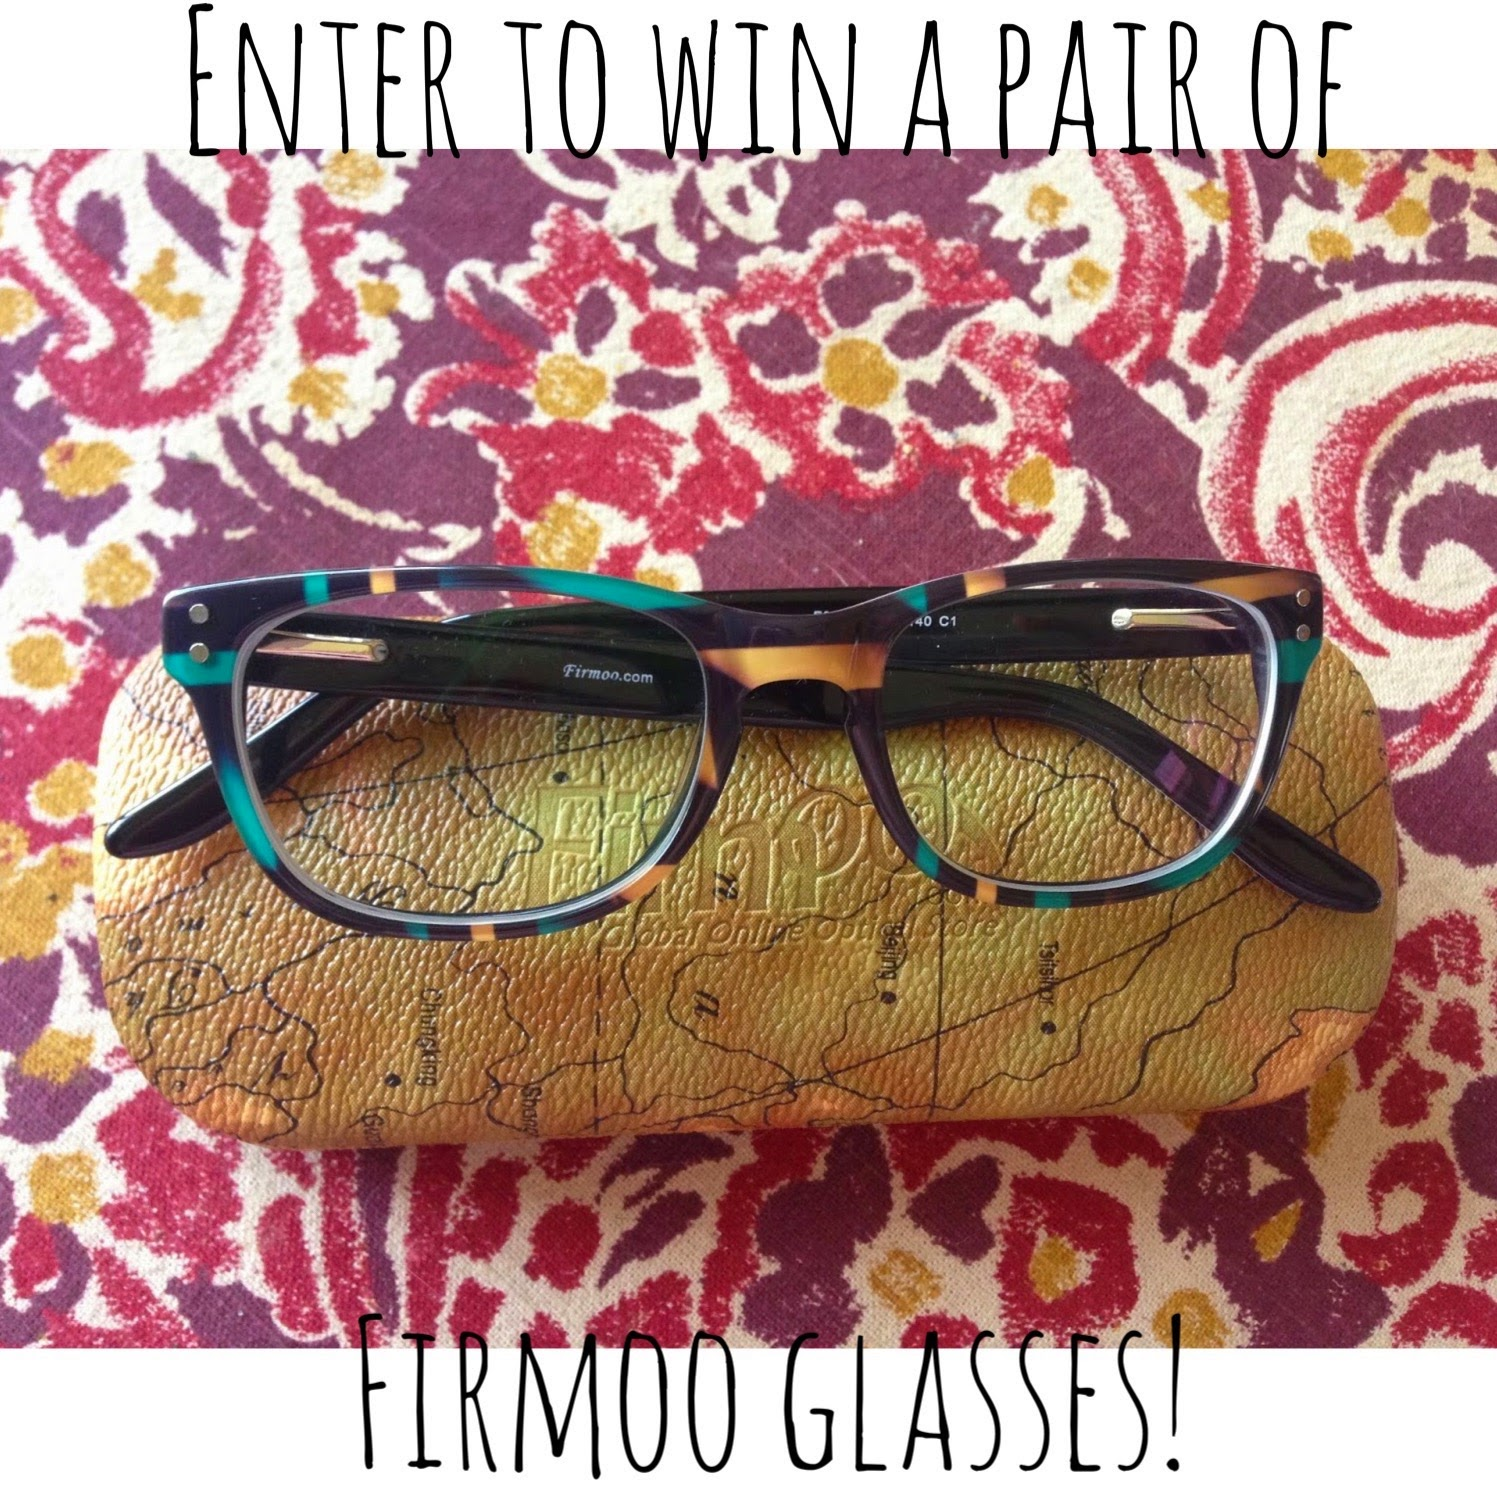 Enter to Win Firmoo Glasses!